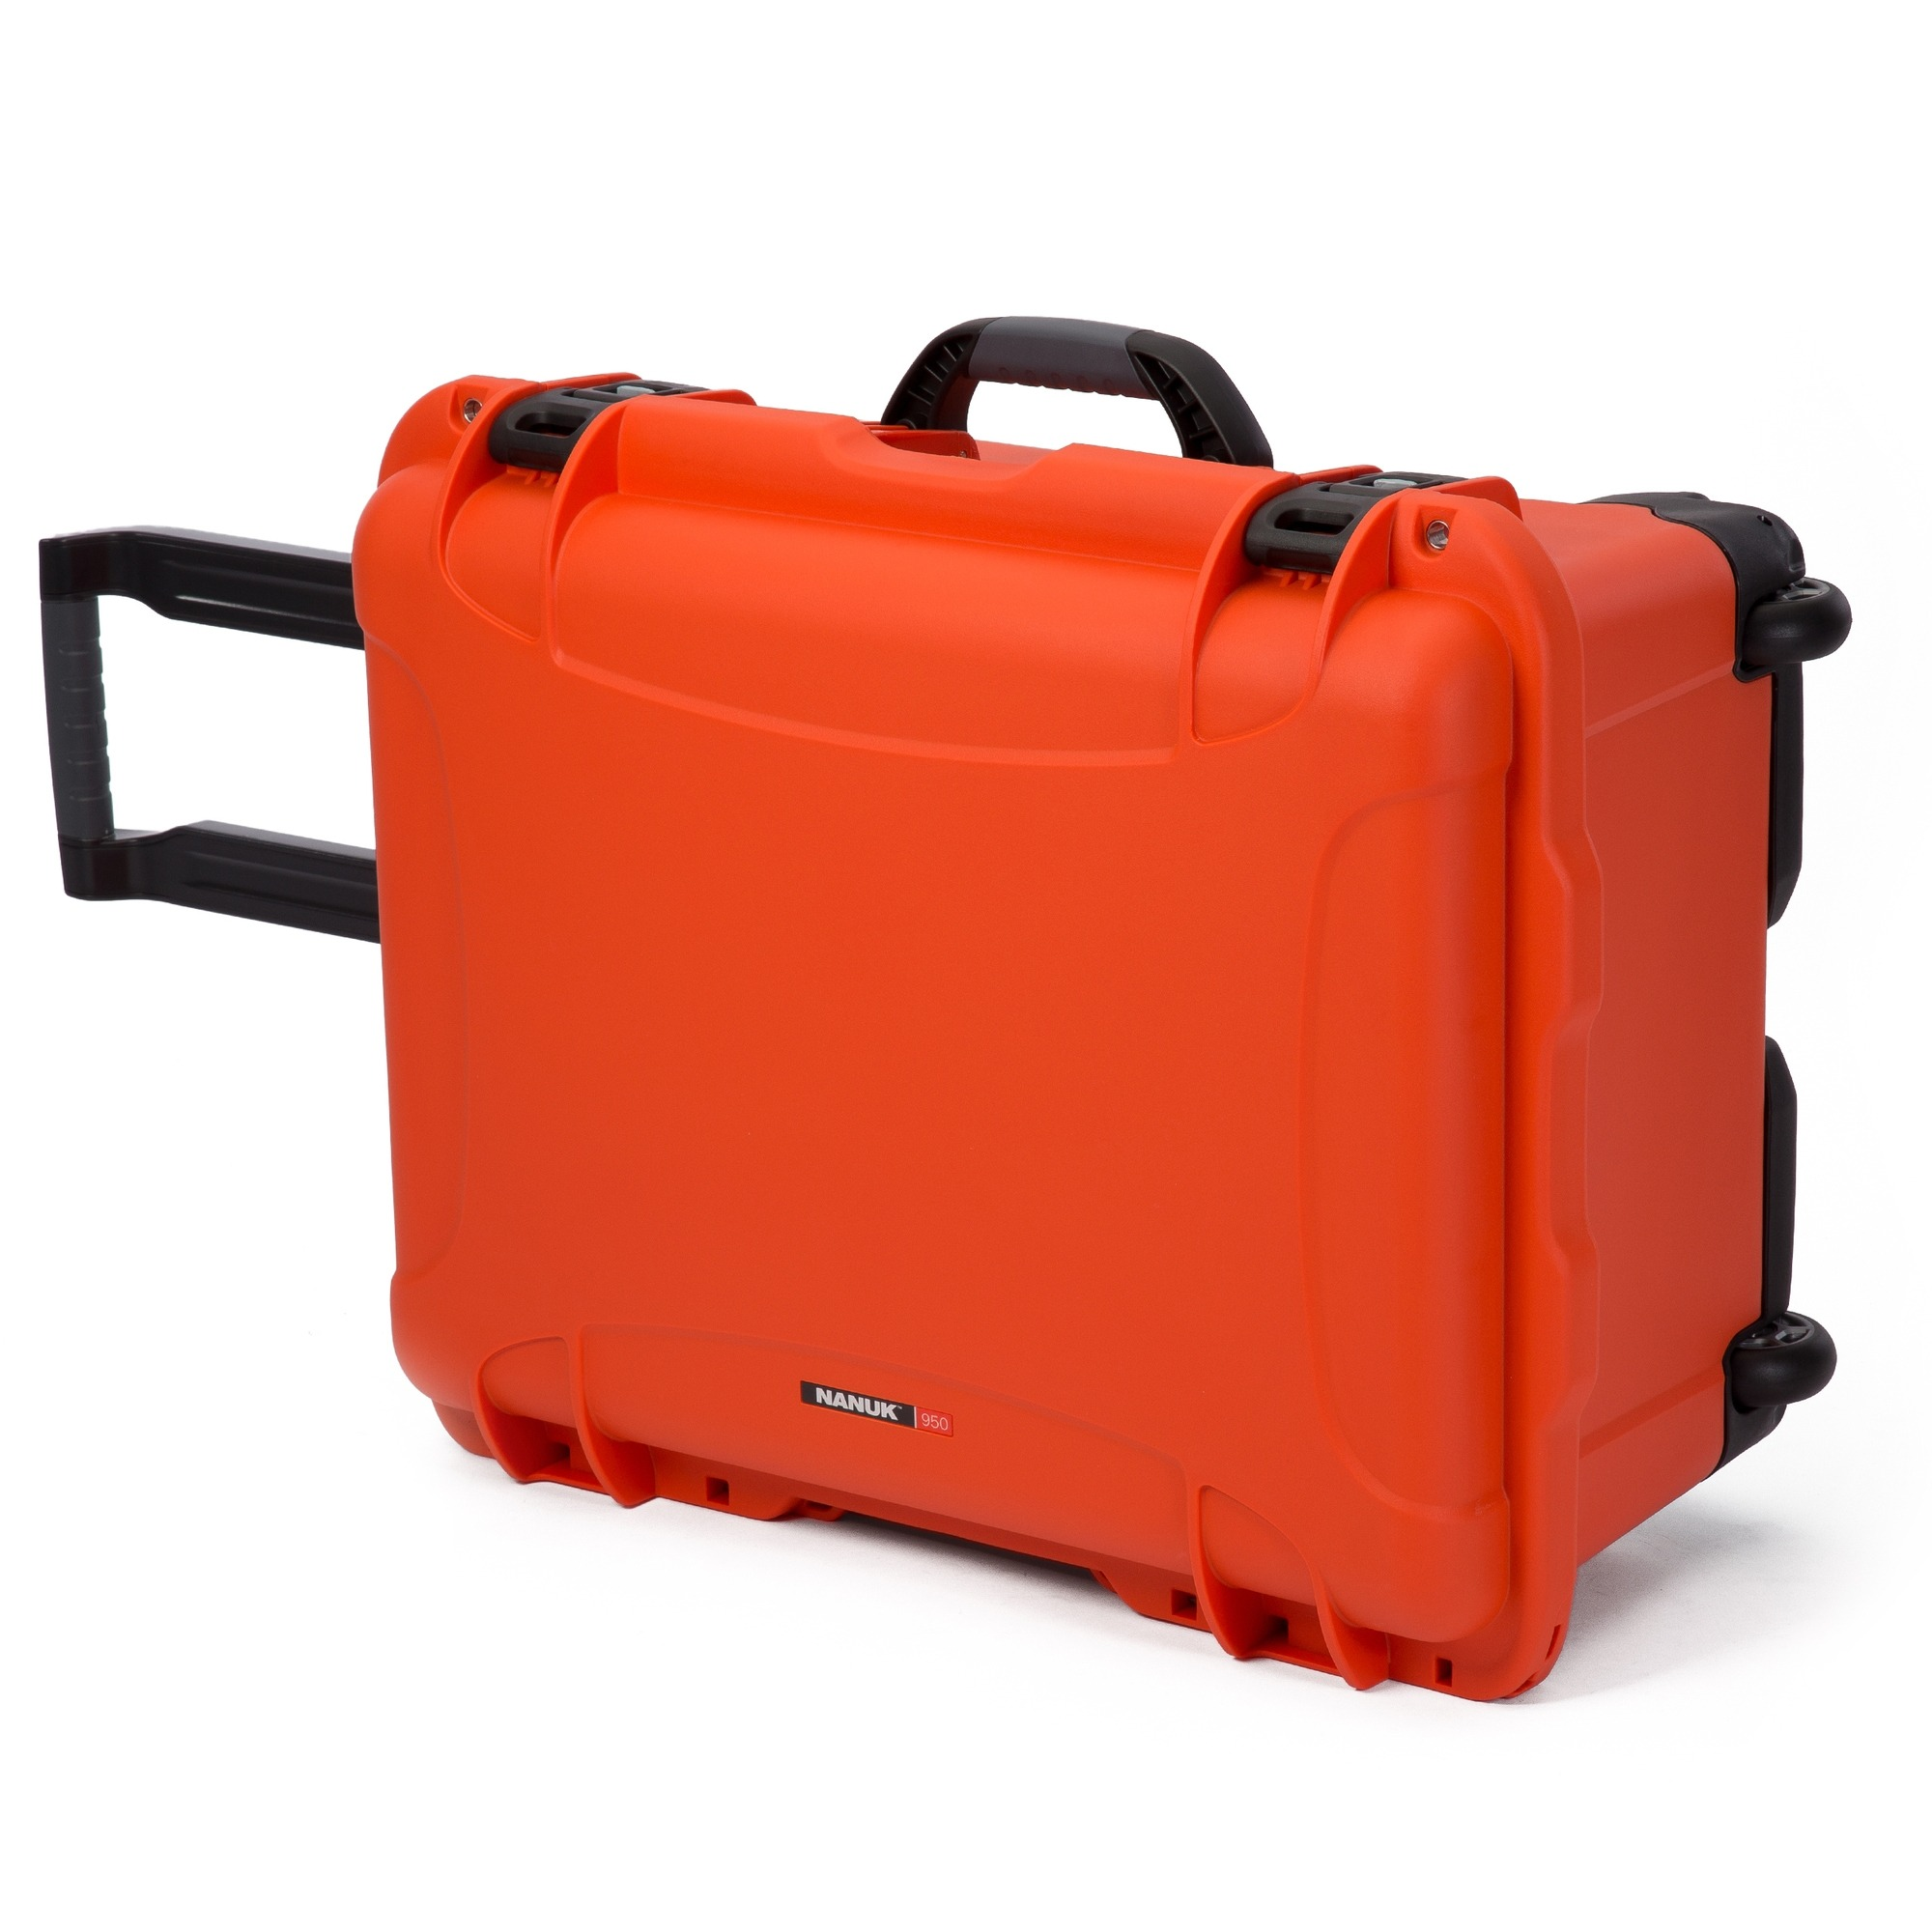 Nanuk 950 – Orange